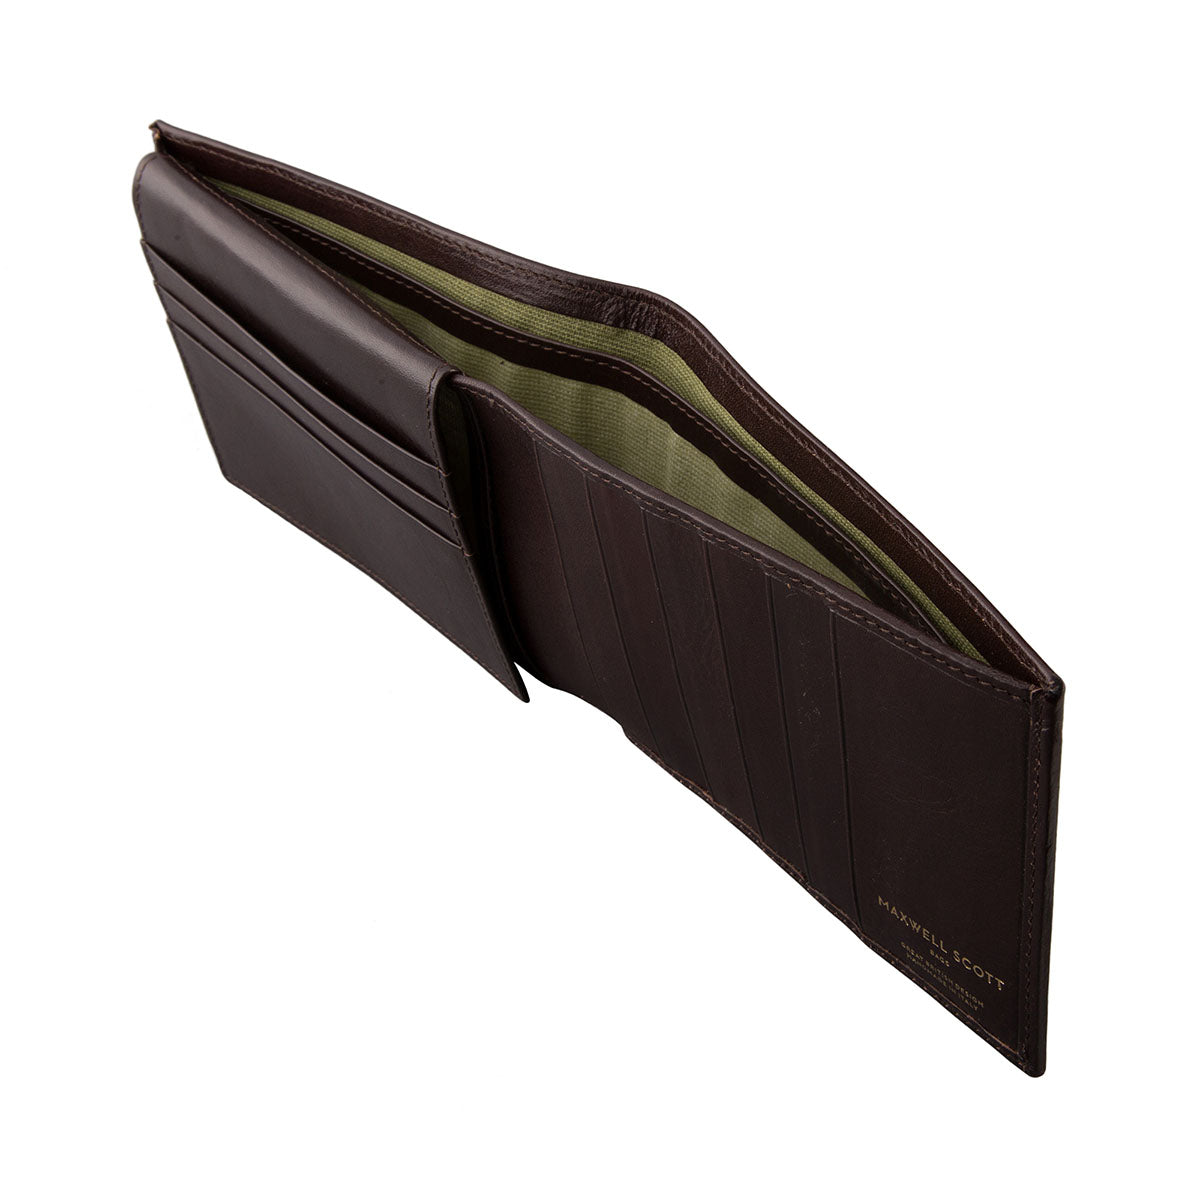 Image 3 of the 'Gallucio' Brown Veg-Tanned Leather Tri Fold Wallet